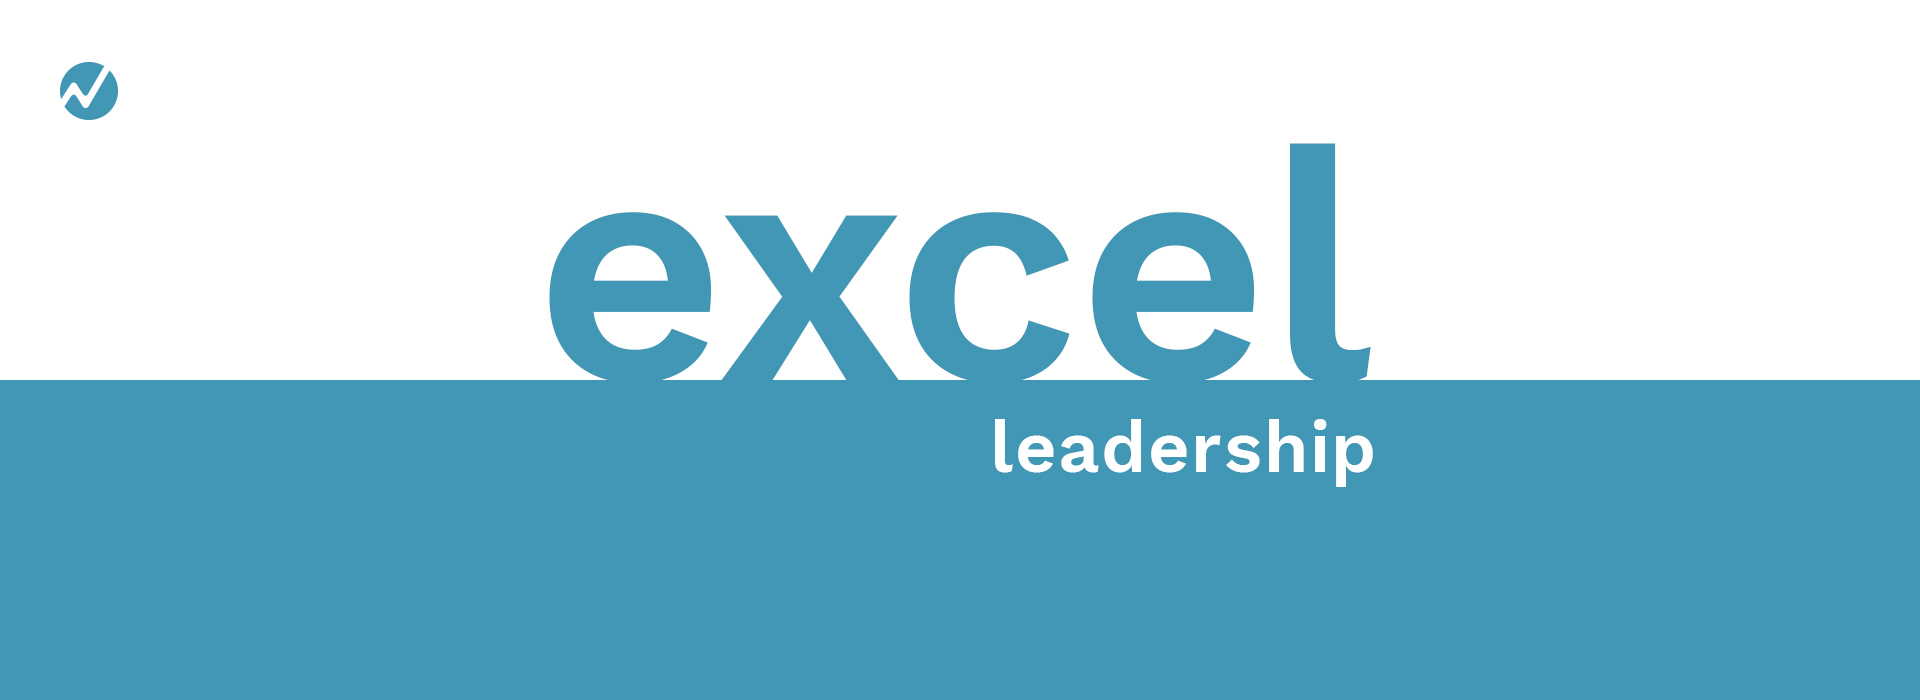 Excel Leadership - web Banner